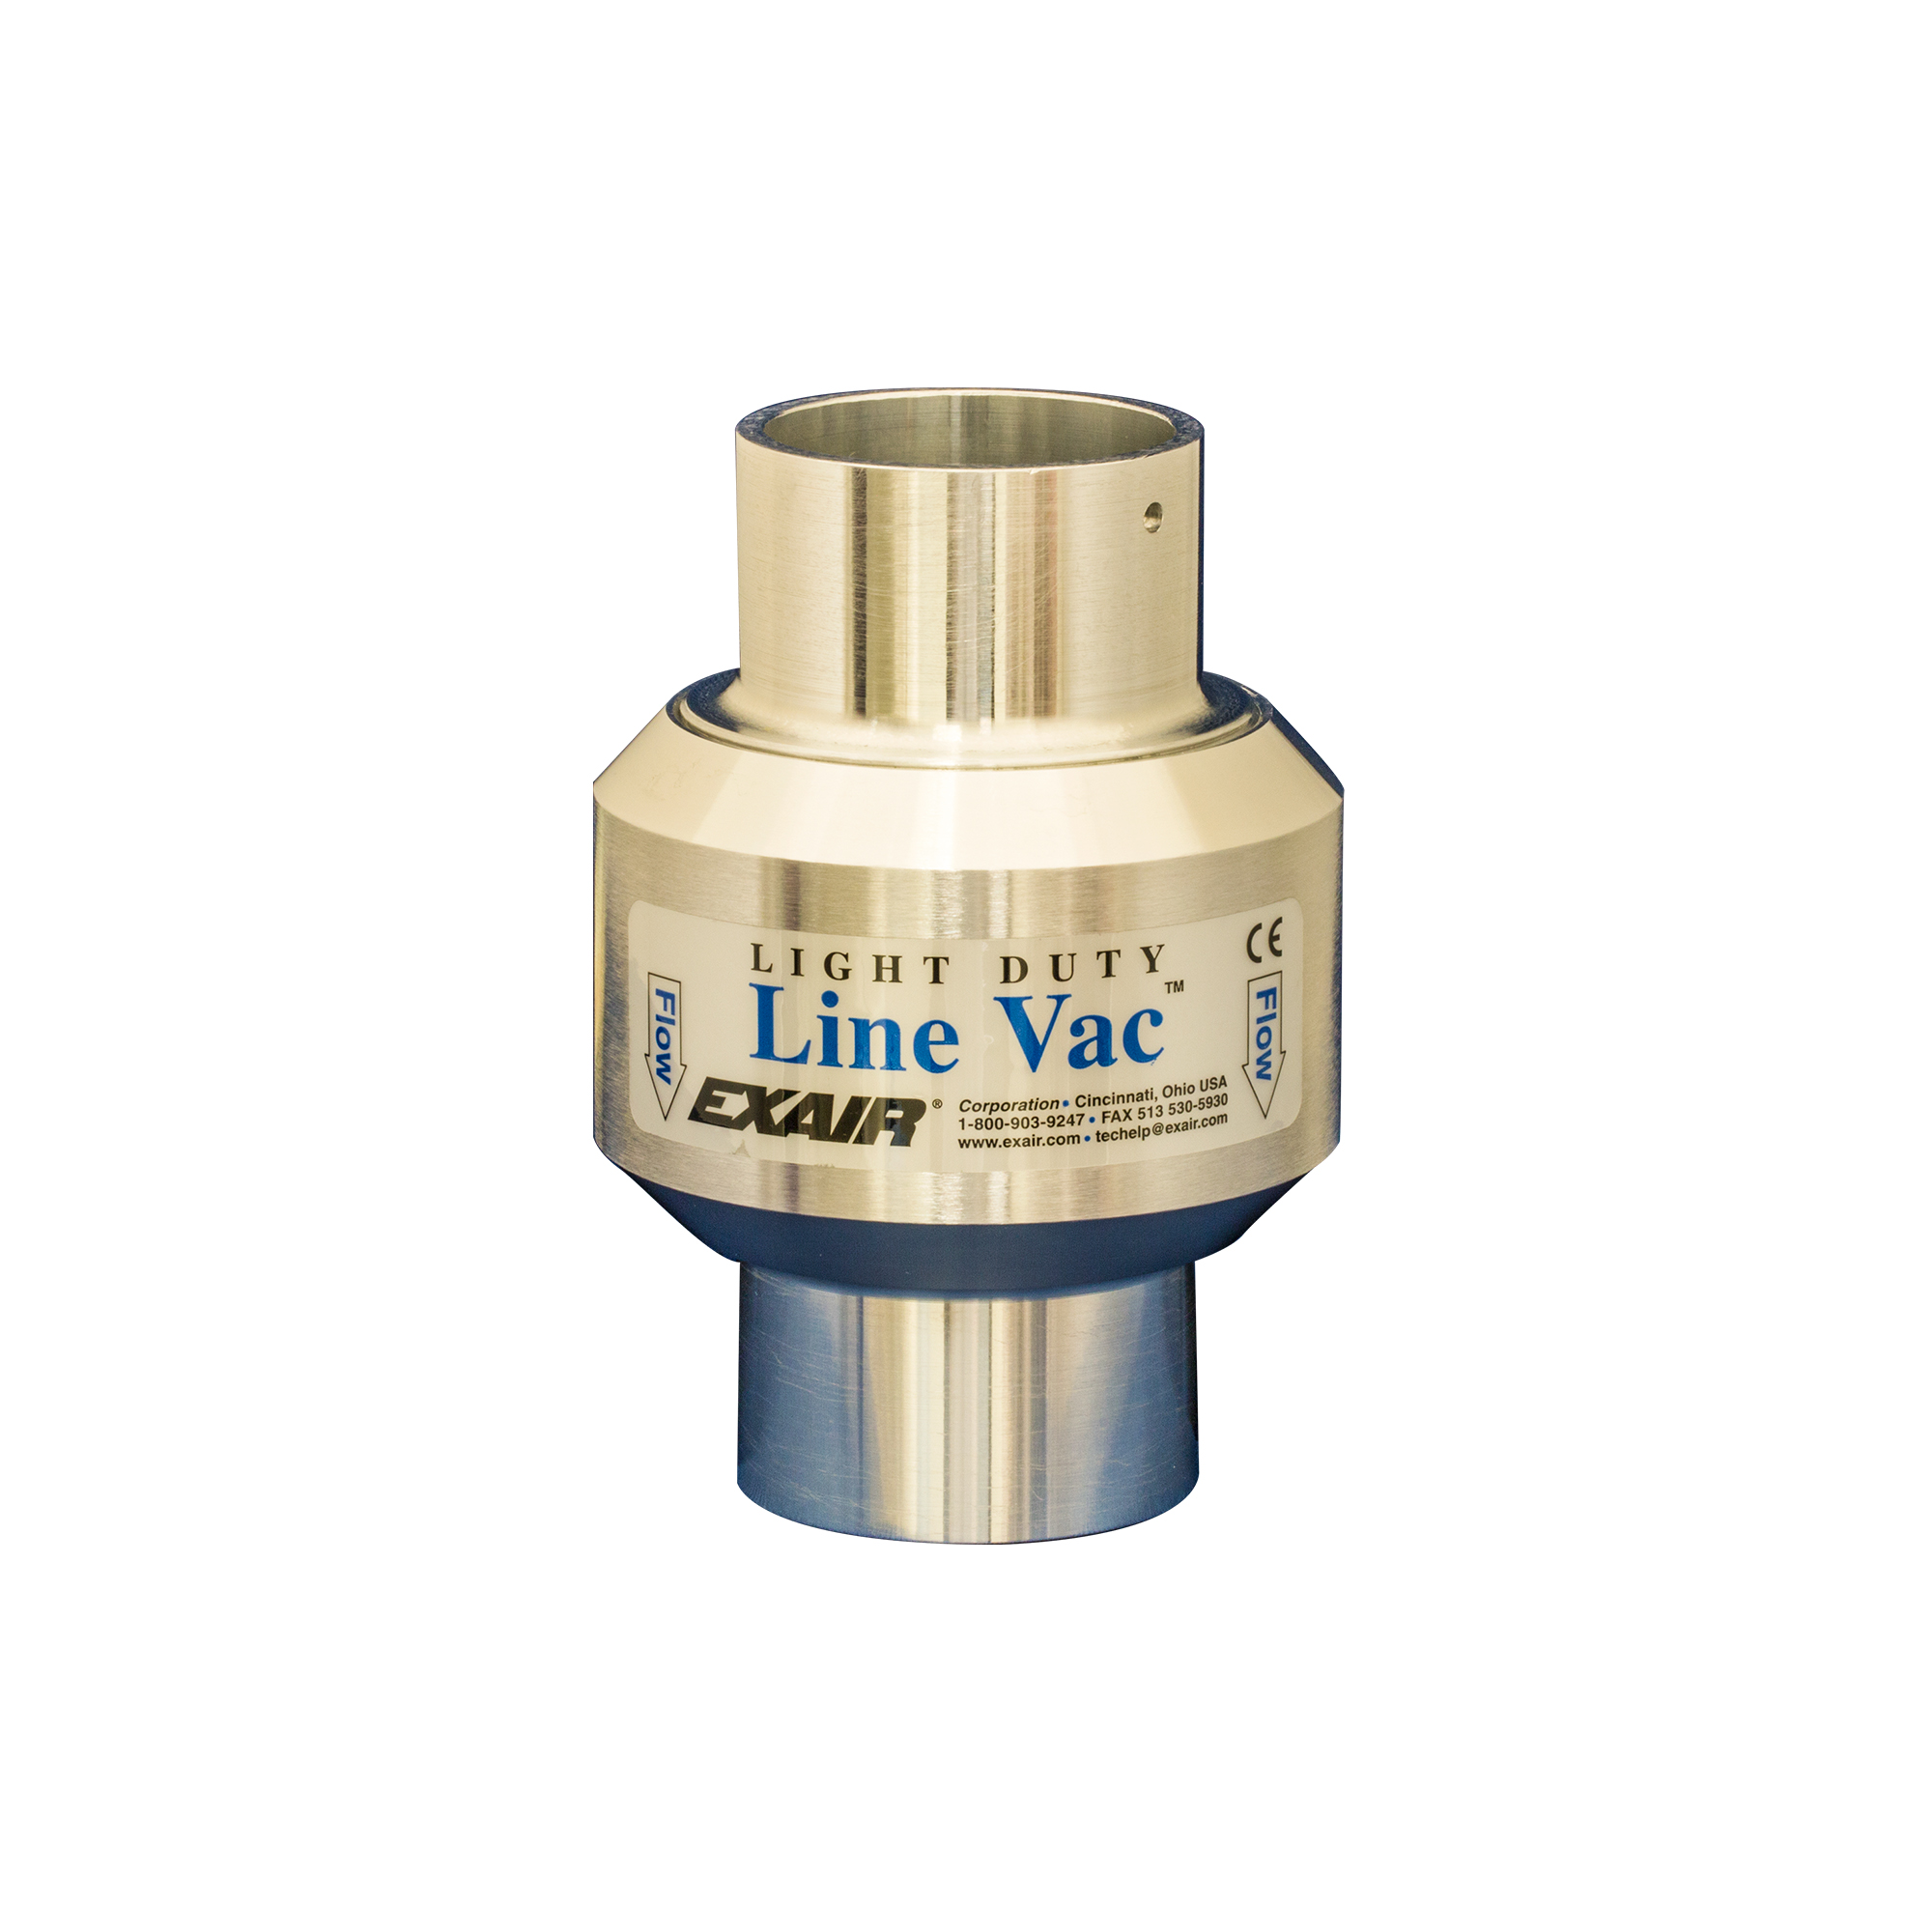 Light Duty Line Vacs are an effective way to convey small volumes of material over short distances.